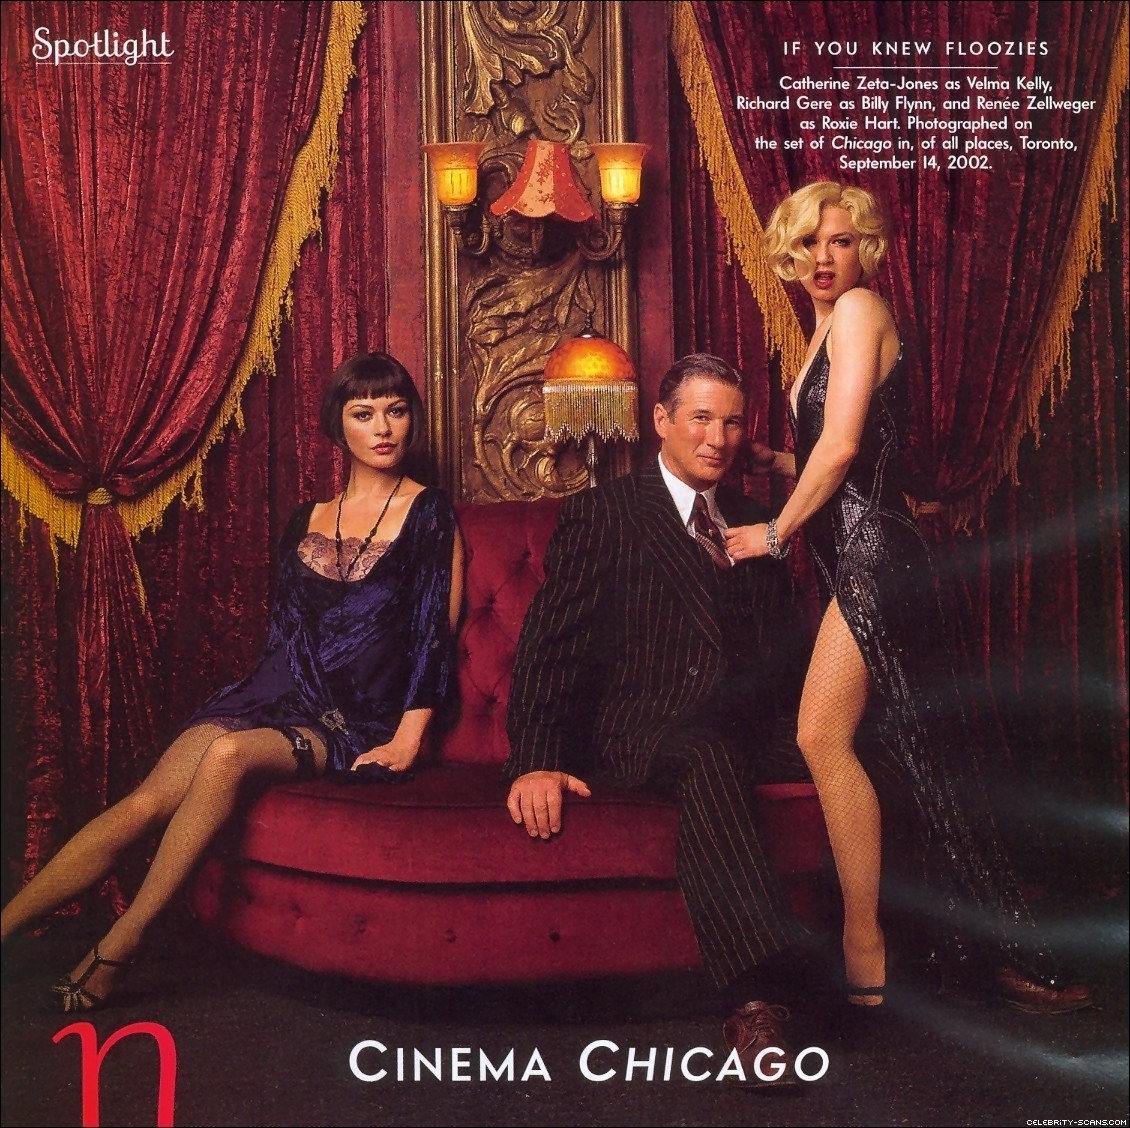 Chicago movies in France